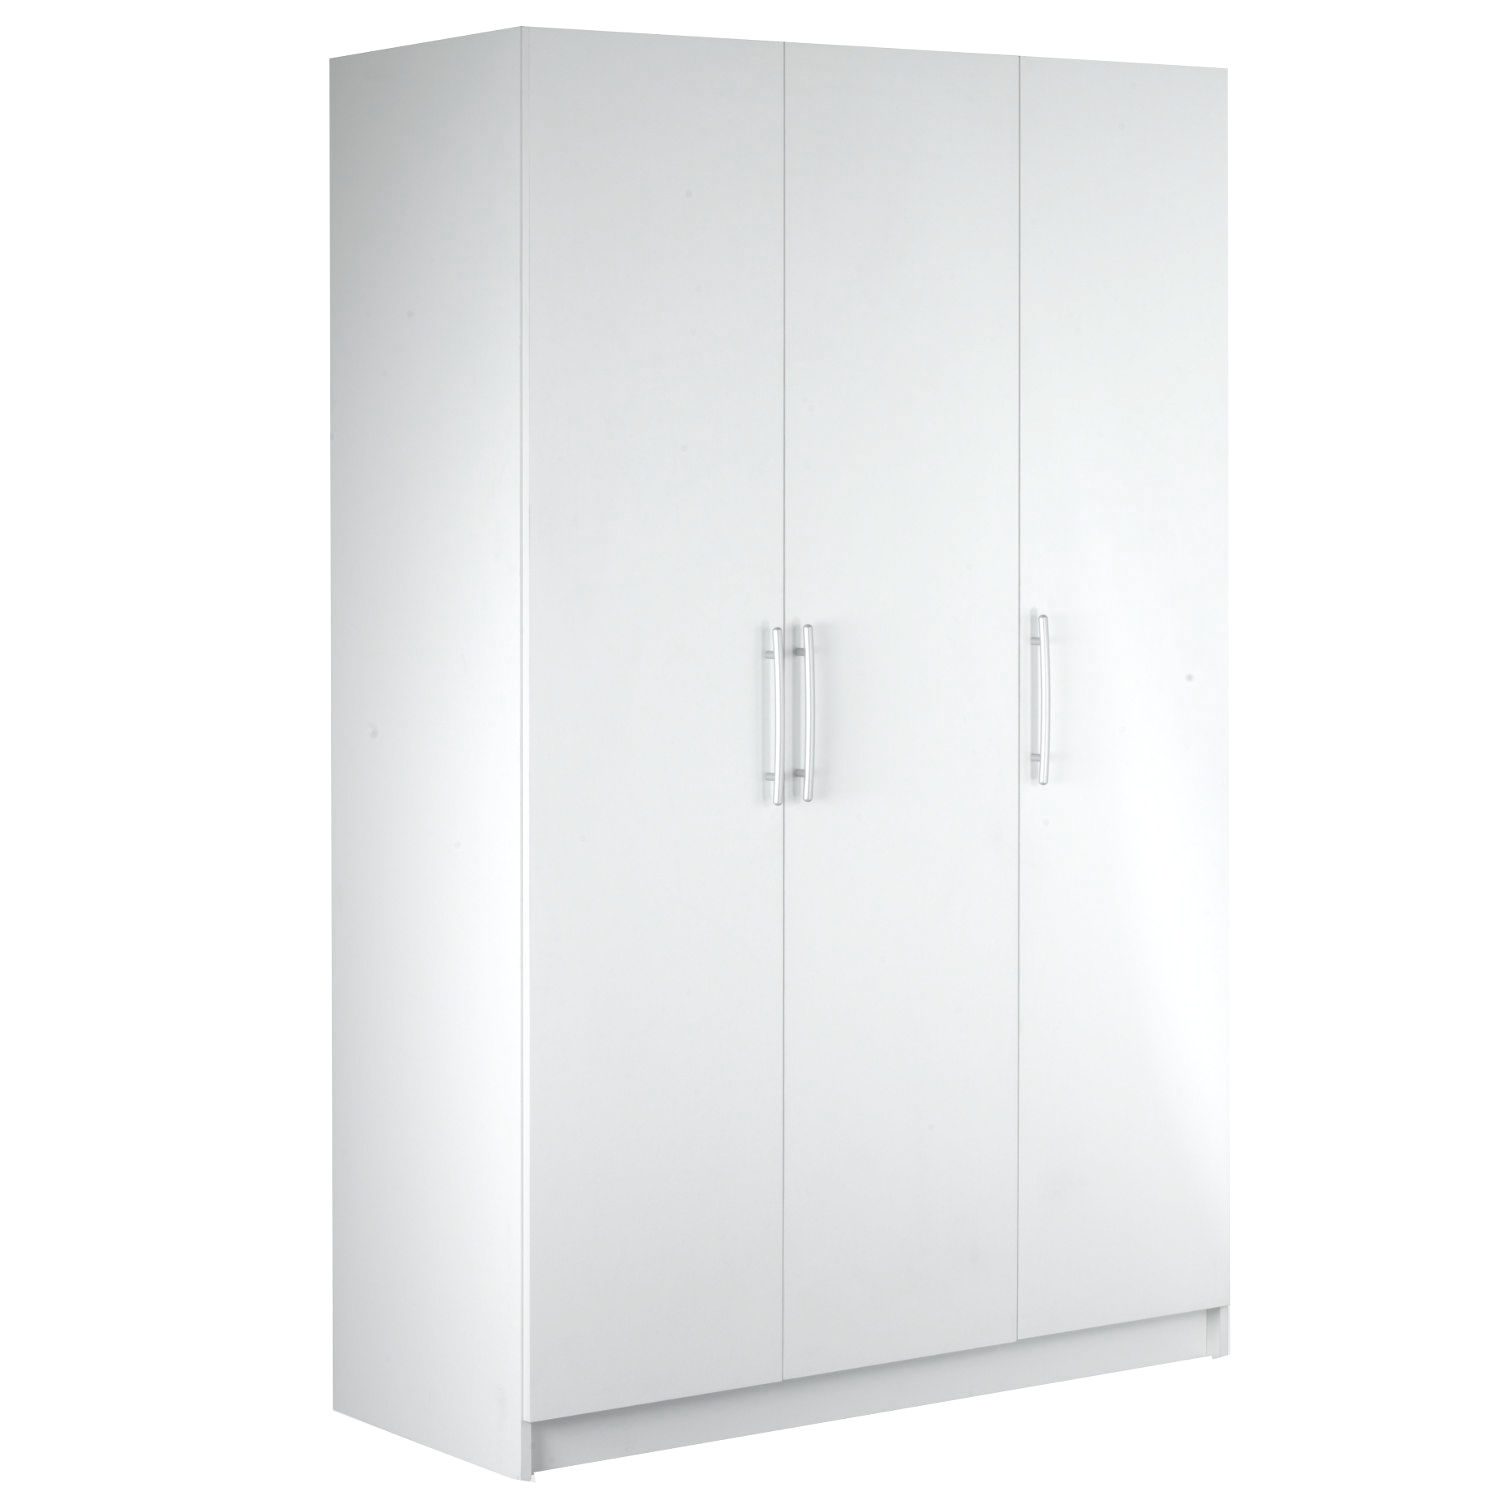 white wardrobes washington 3 door wardrobe - white - next day delivery washington VDDIELG